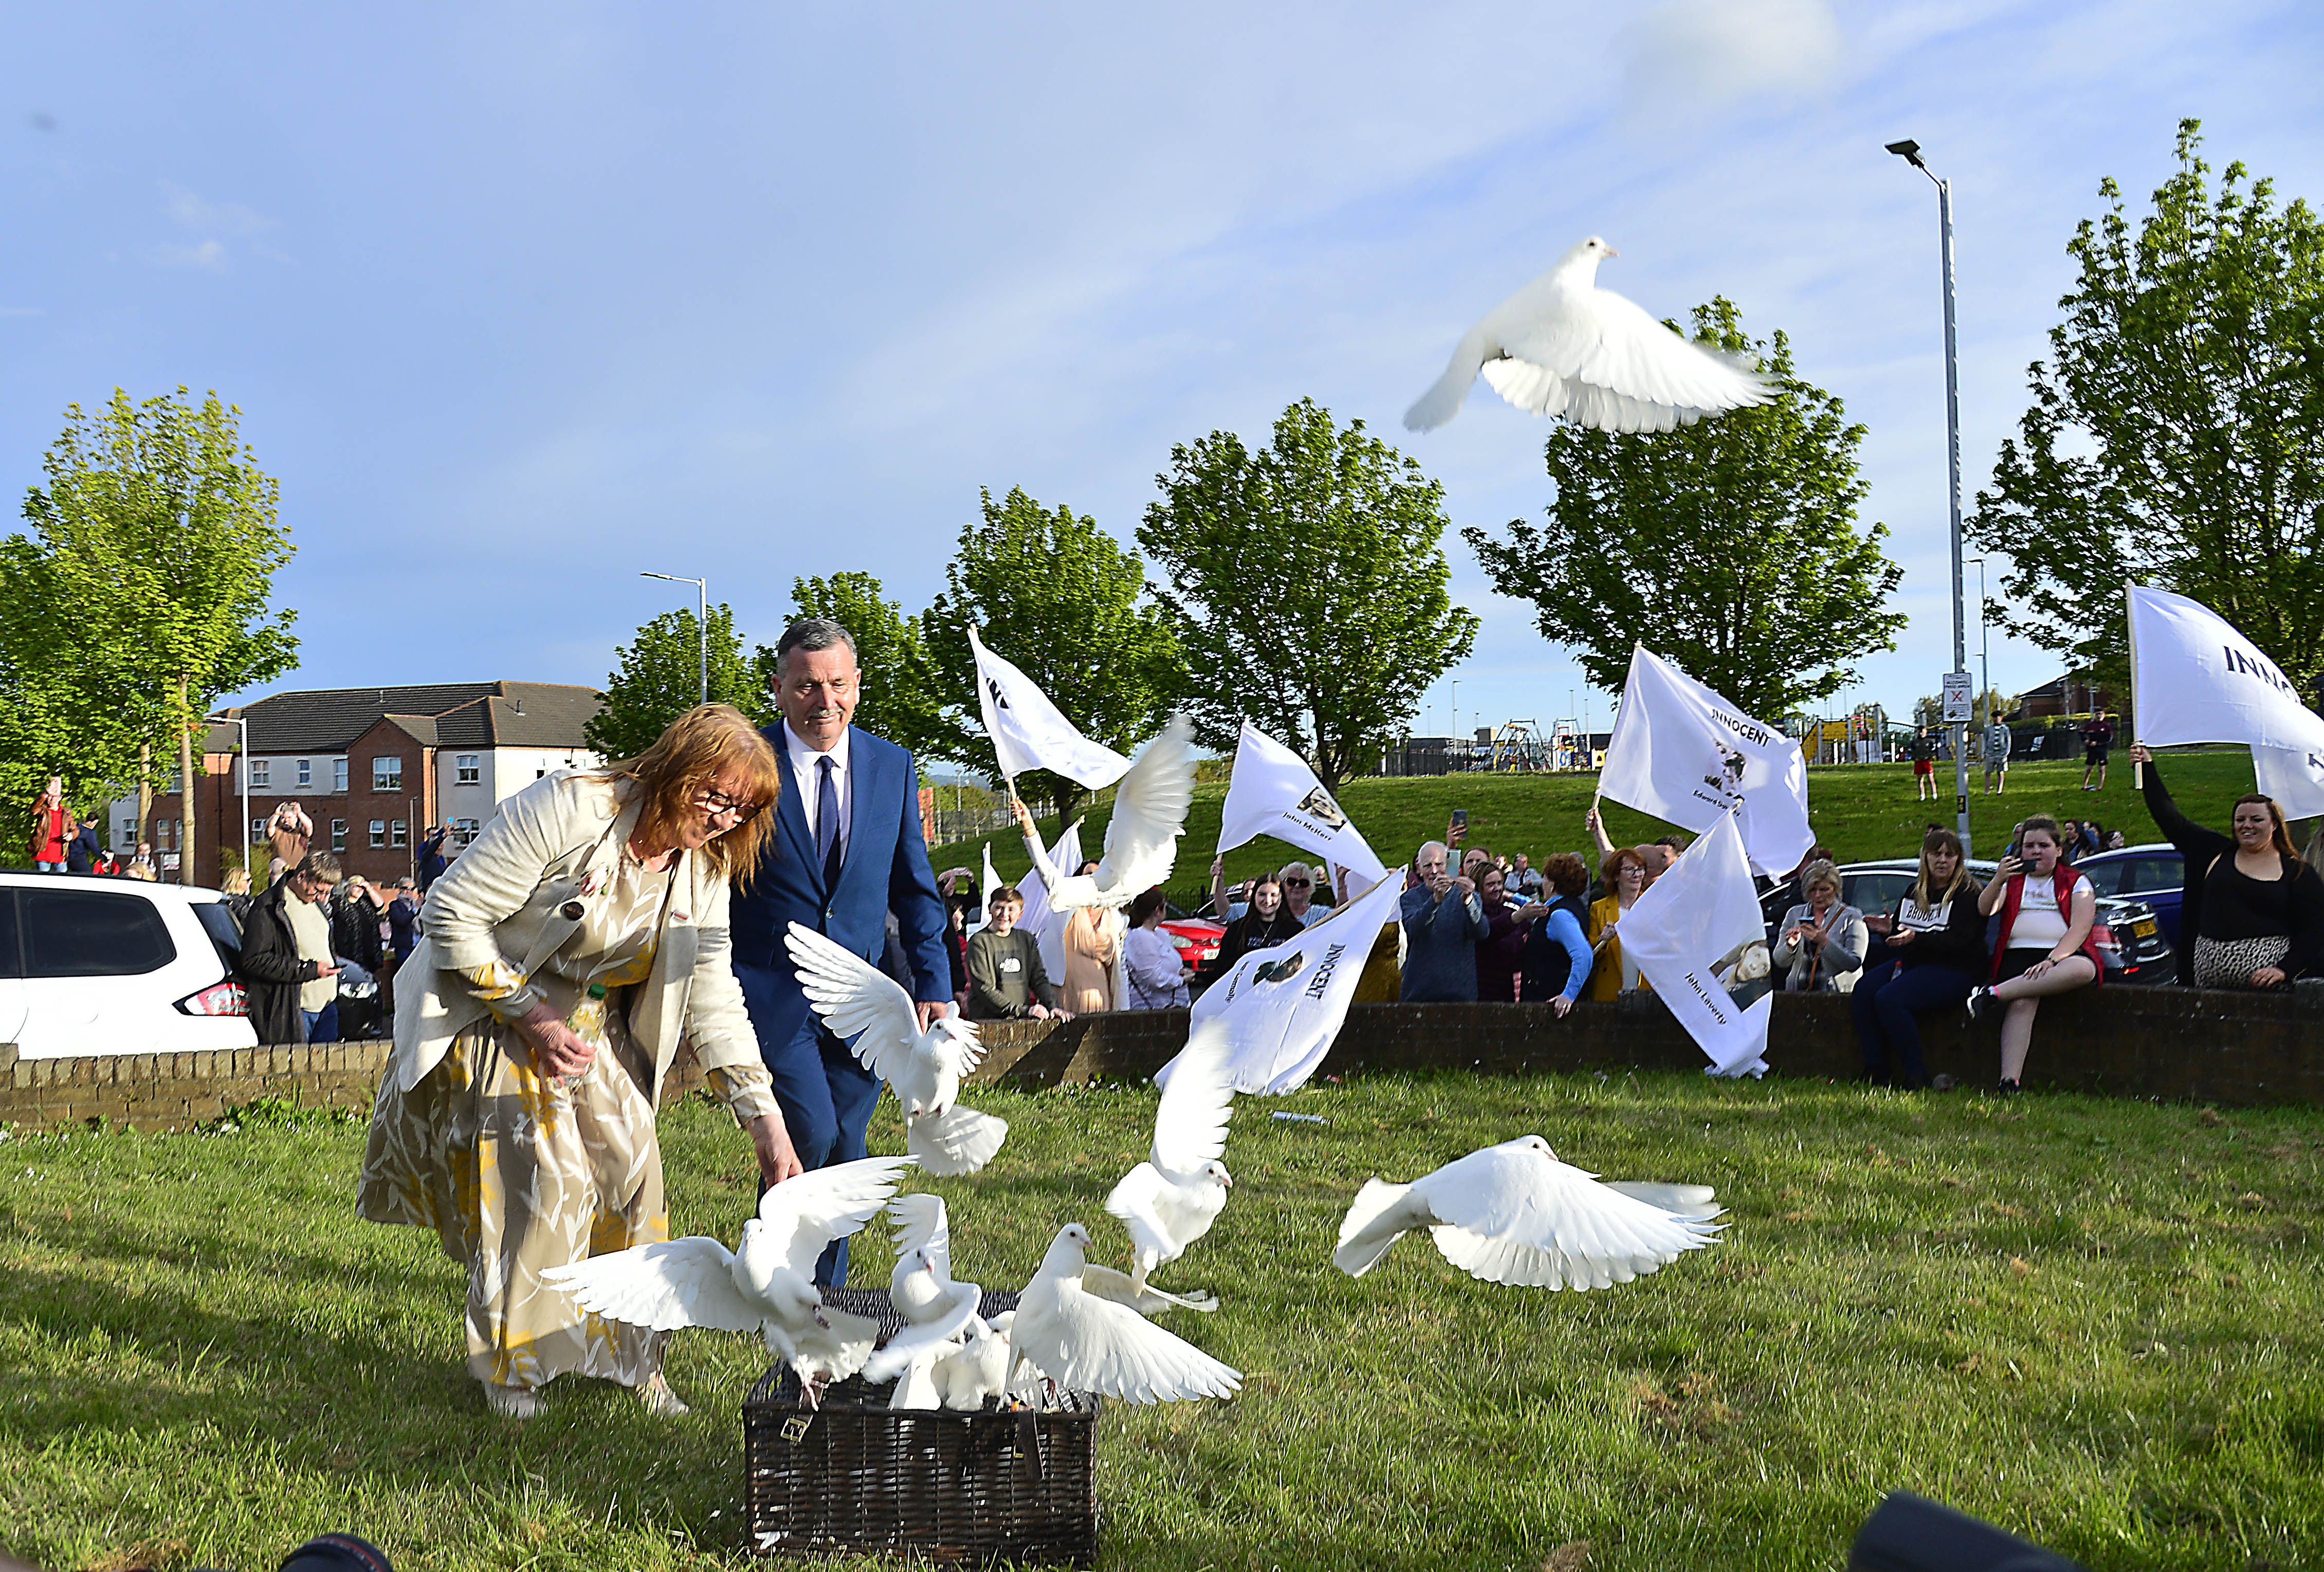 TRUTH WILL OUT: Ballymurphy Massacre families releas doves in memory of their loved ones after the Inquest verdict. It\'s widely believed the British Government moved to ban any further conflict-related inquests which would shed light on state violence.